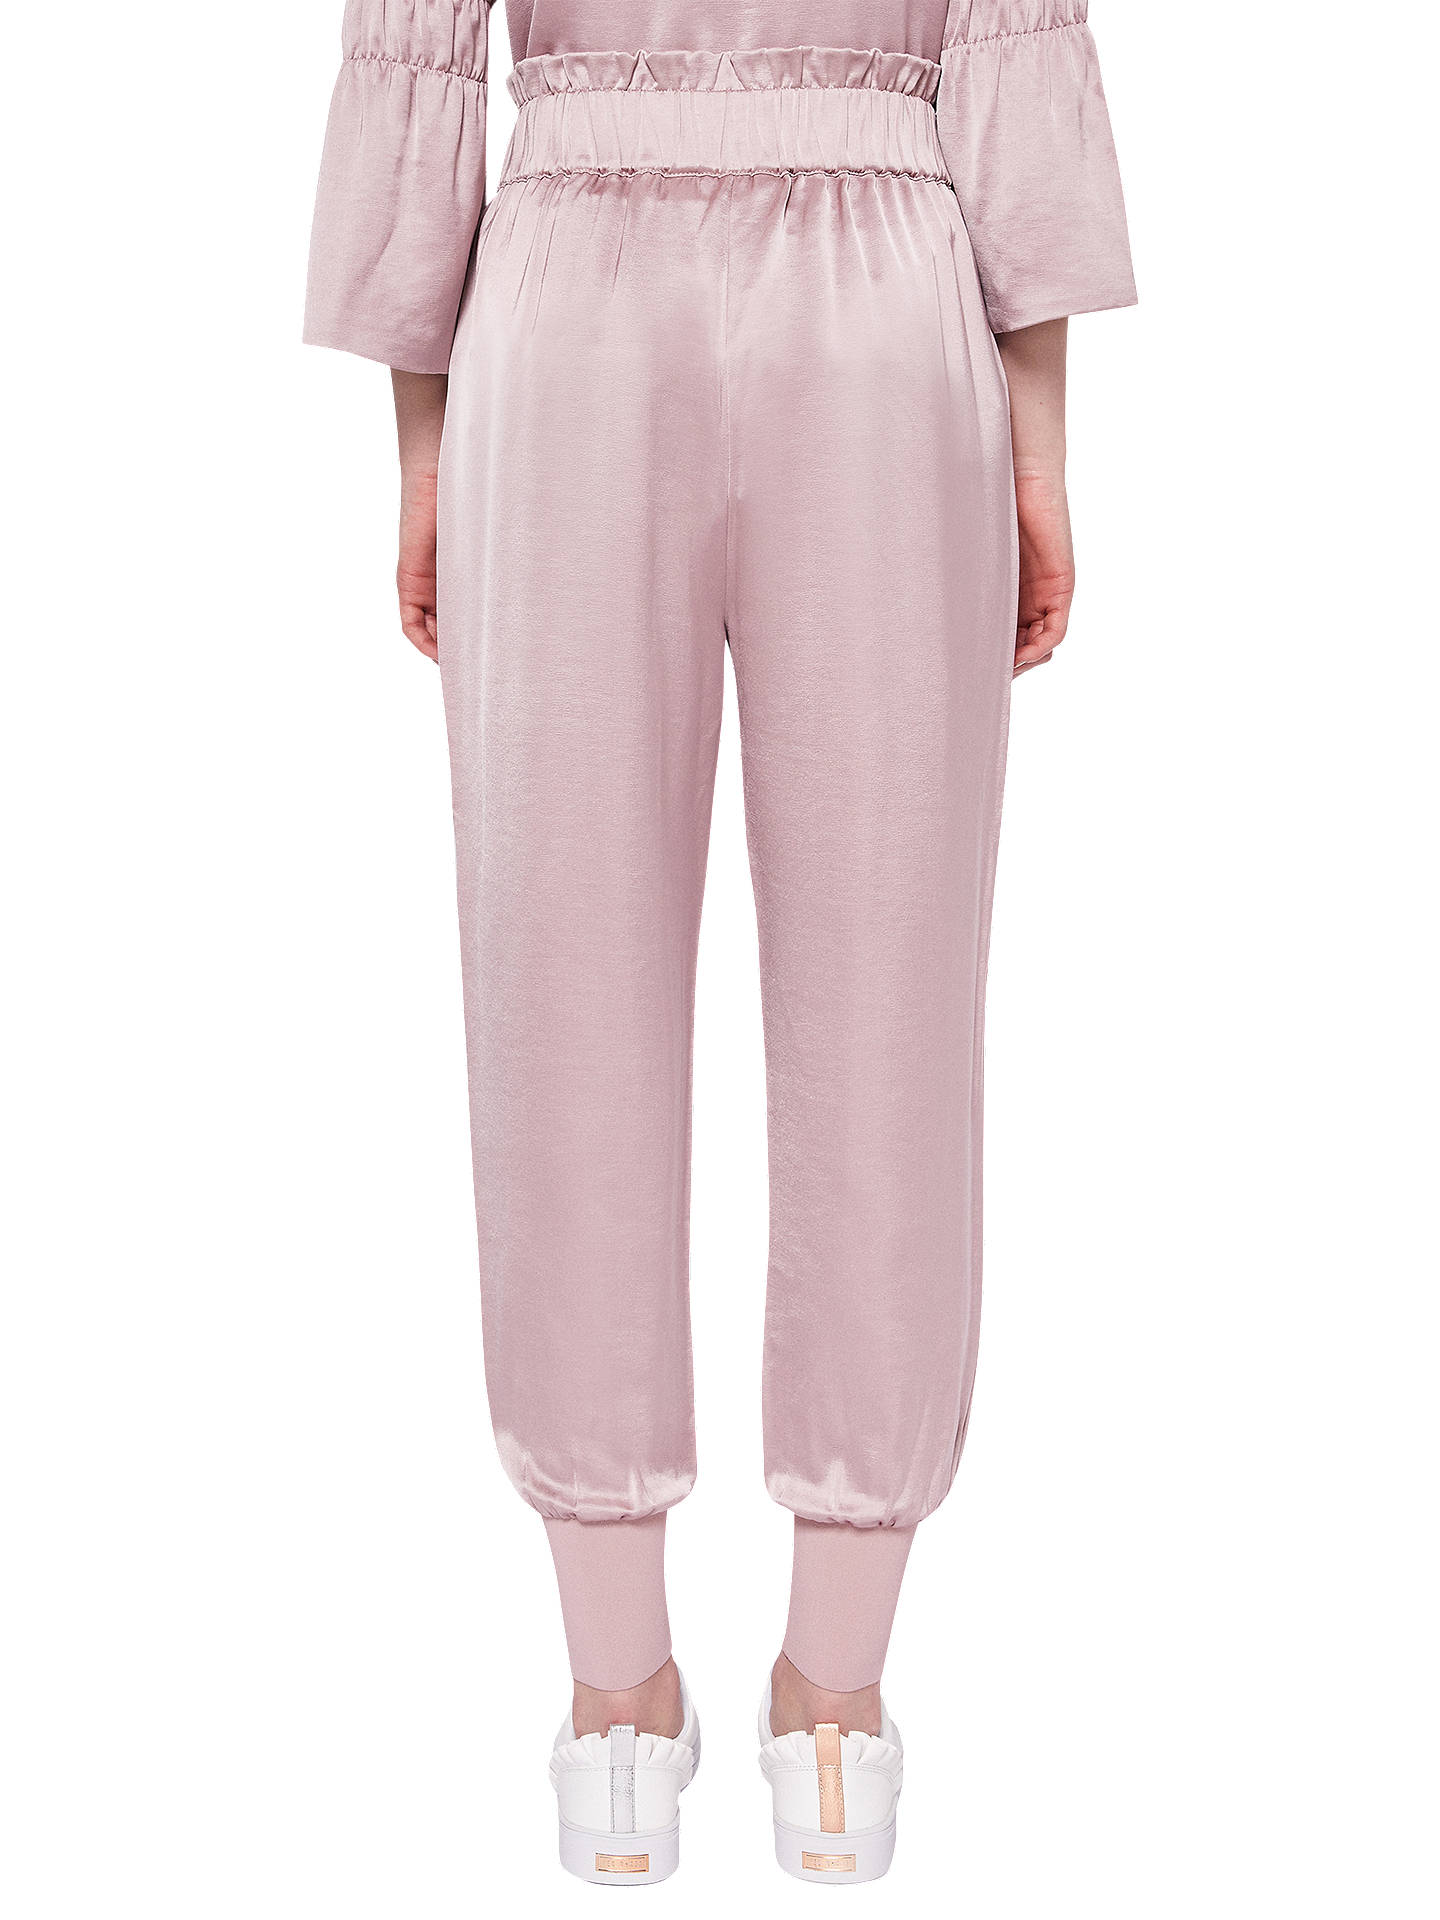 5ecf8cea79c1 ... Buy Ted Baker Ted Says Relax Nayarmi Paper Bag High Waist Trousers